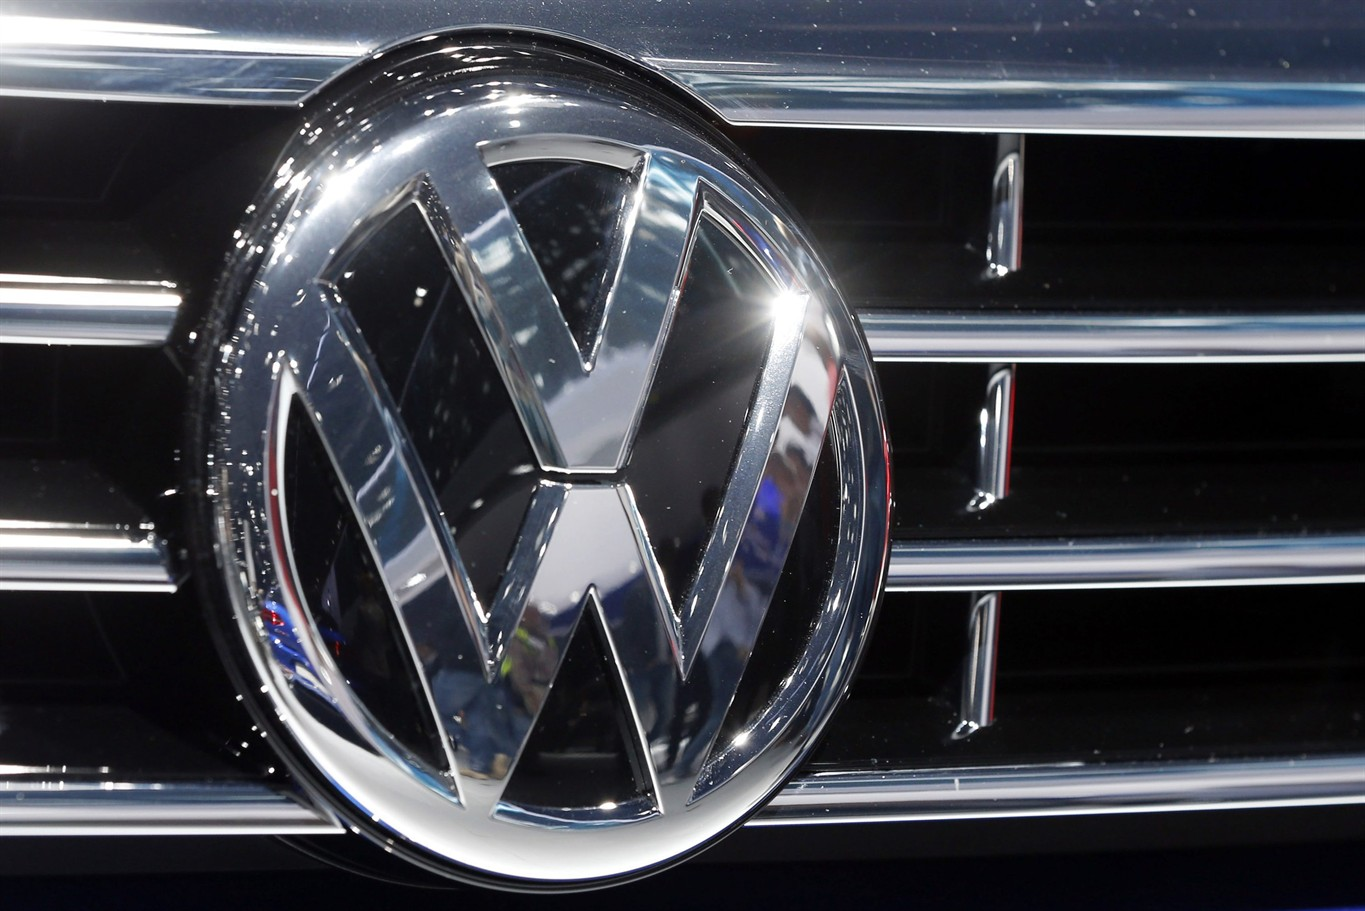 VW, Justice Department nearing $3bl agreement over diesel allegations